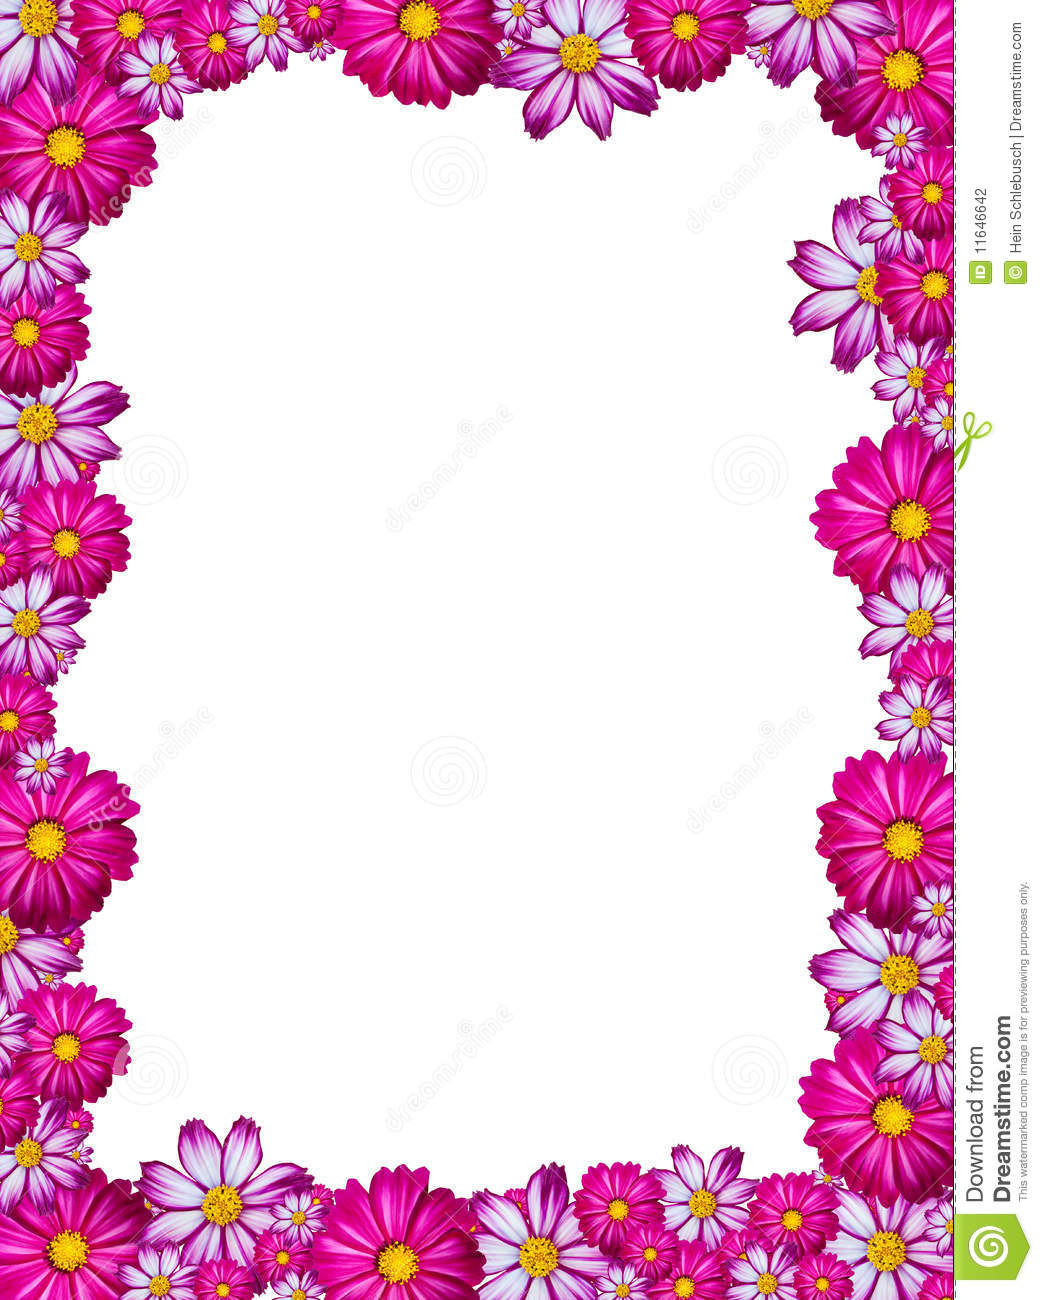 Pink, white and purple flower frame with white background.